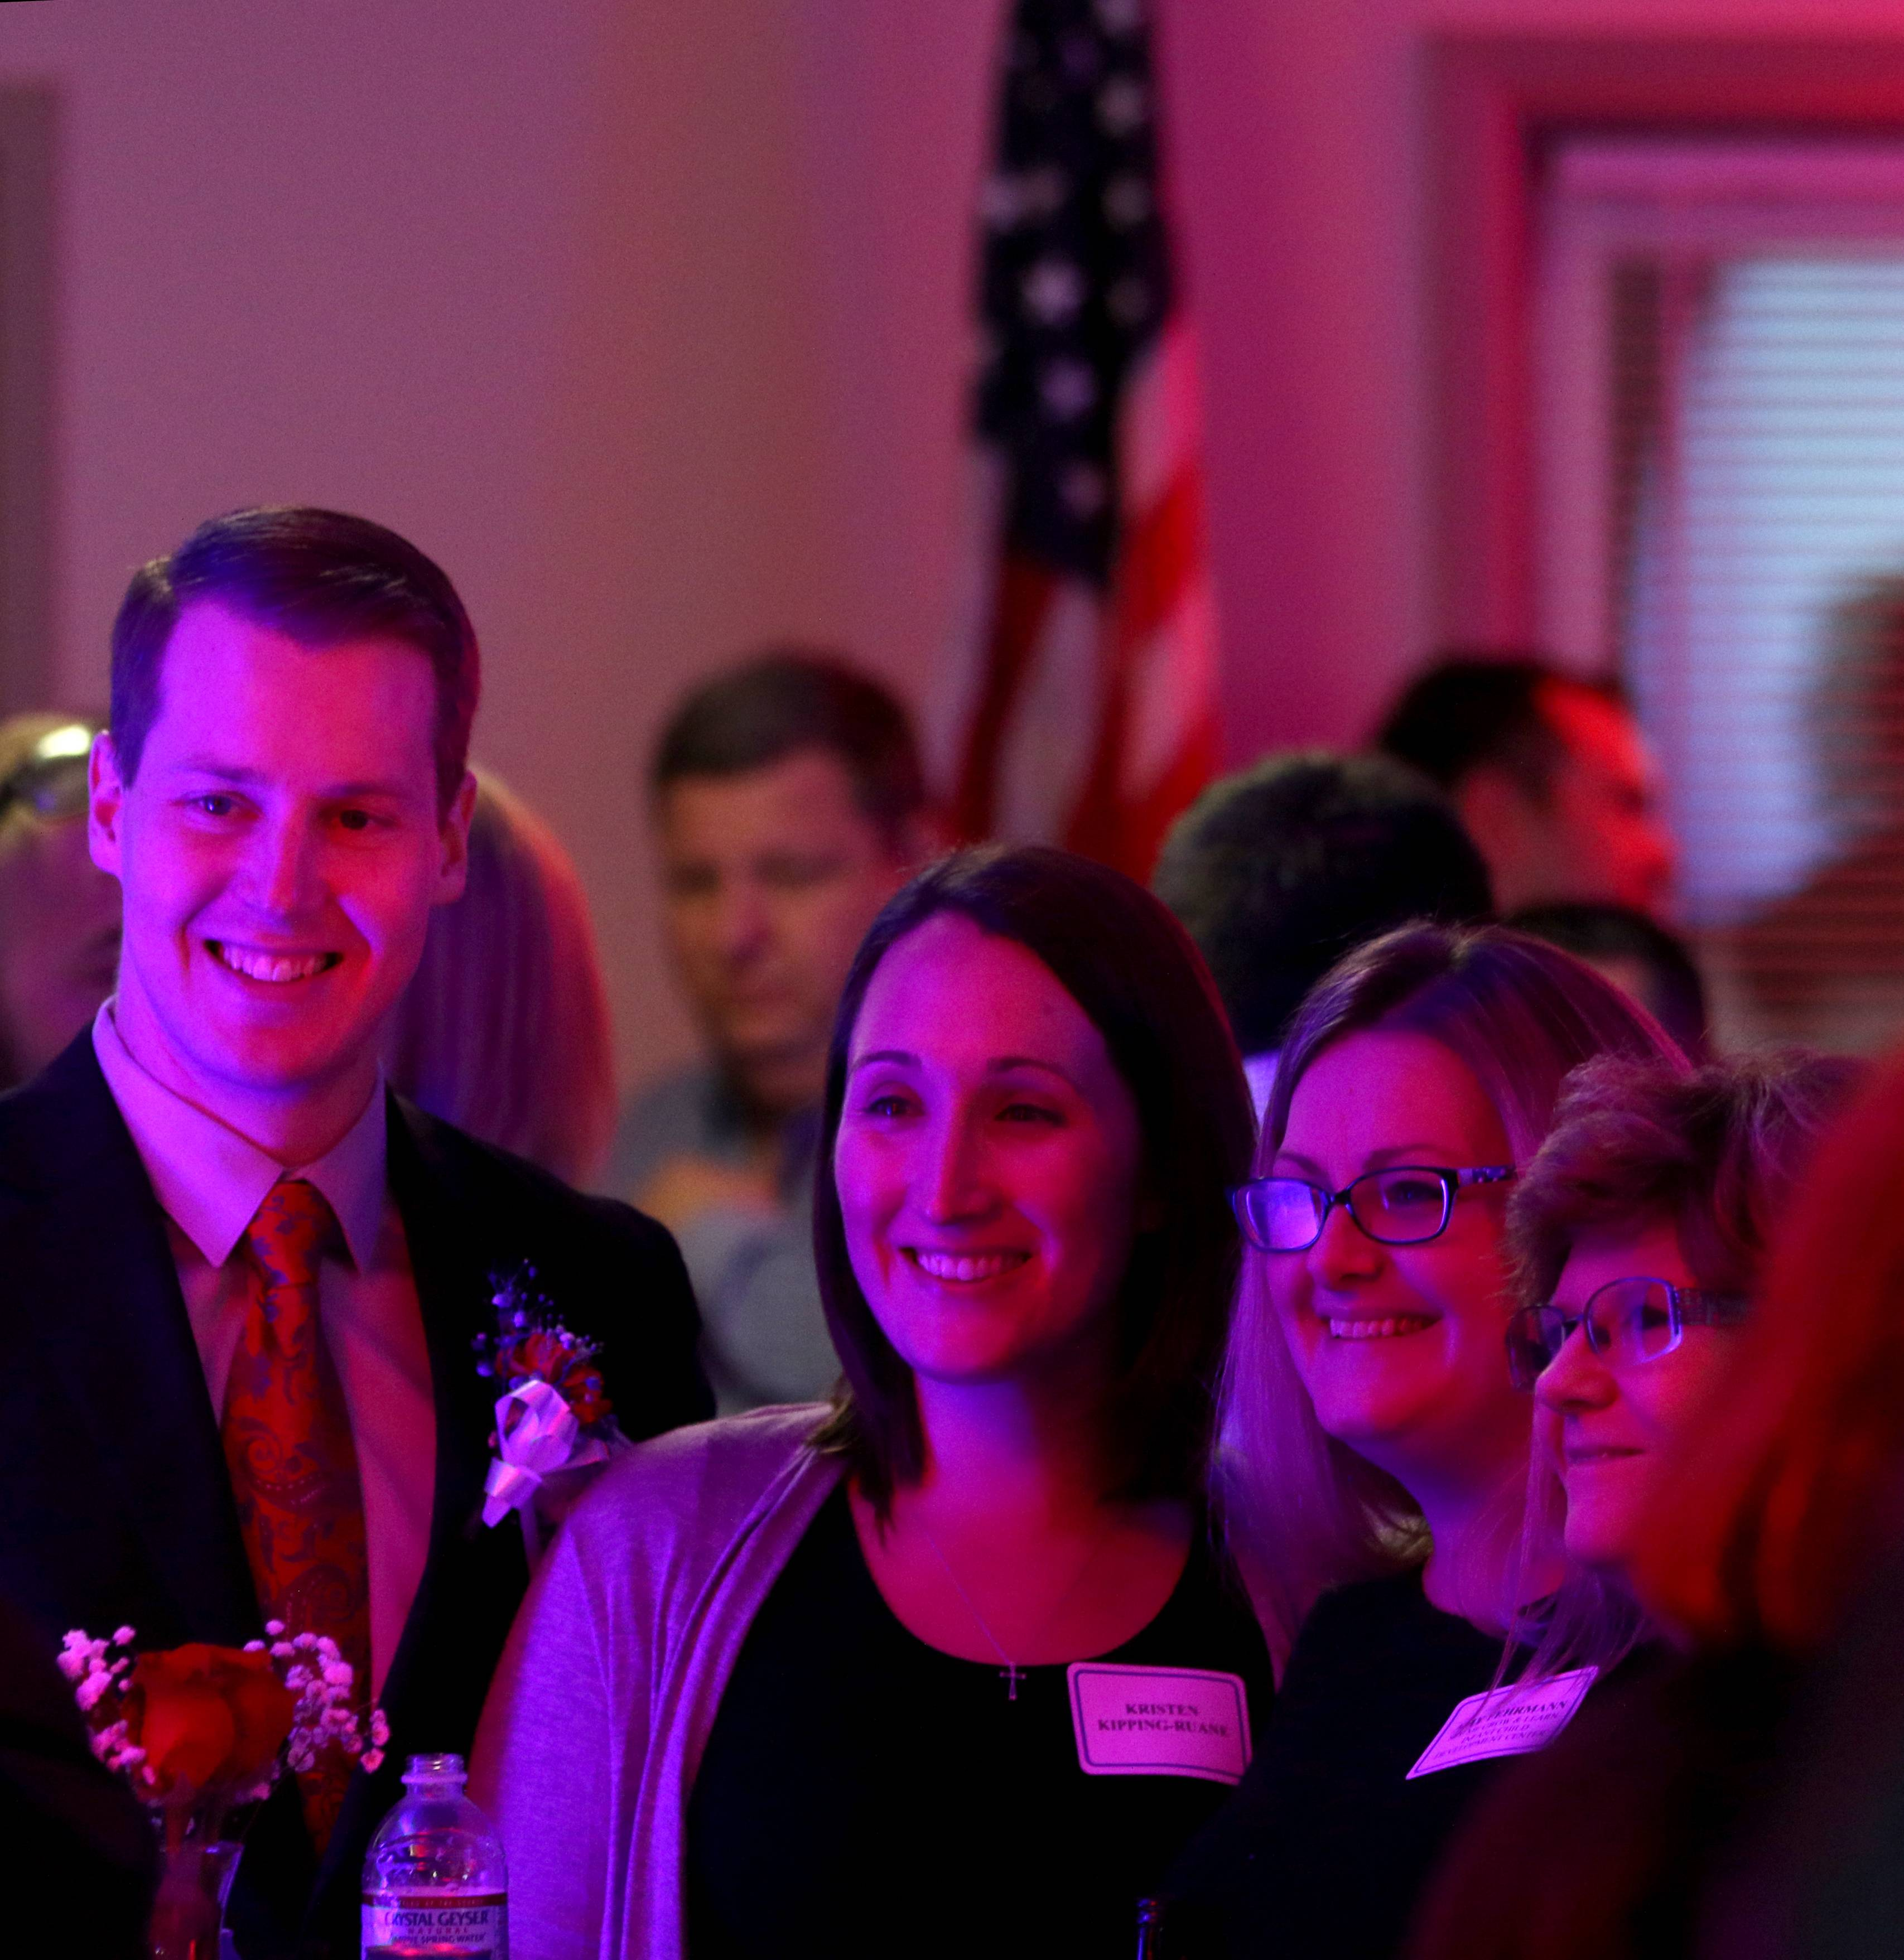 Colin Patrick Kipping-Raune, left, of Western Springs mingles with others during the Des Plaines Chamber of Commerce & Industry Veterans Back to Work Boot Camp graduation ceremony at Des Plaines American Legion Post 36 on Thursday night. Kipping-Raune was honored as a graduate of the program.